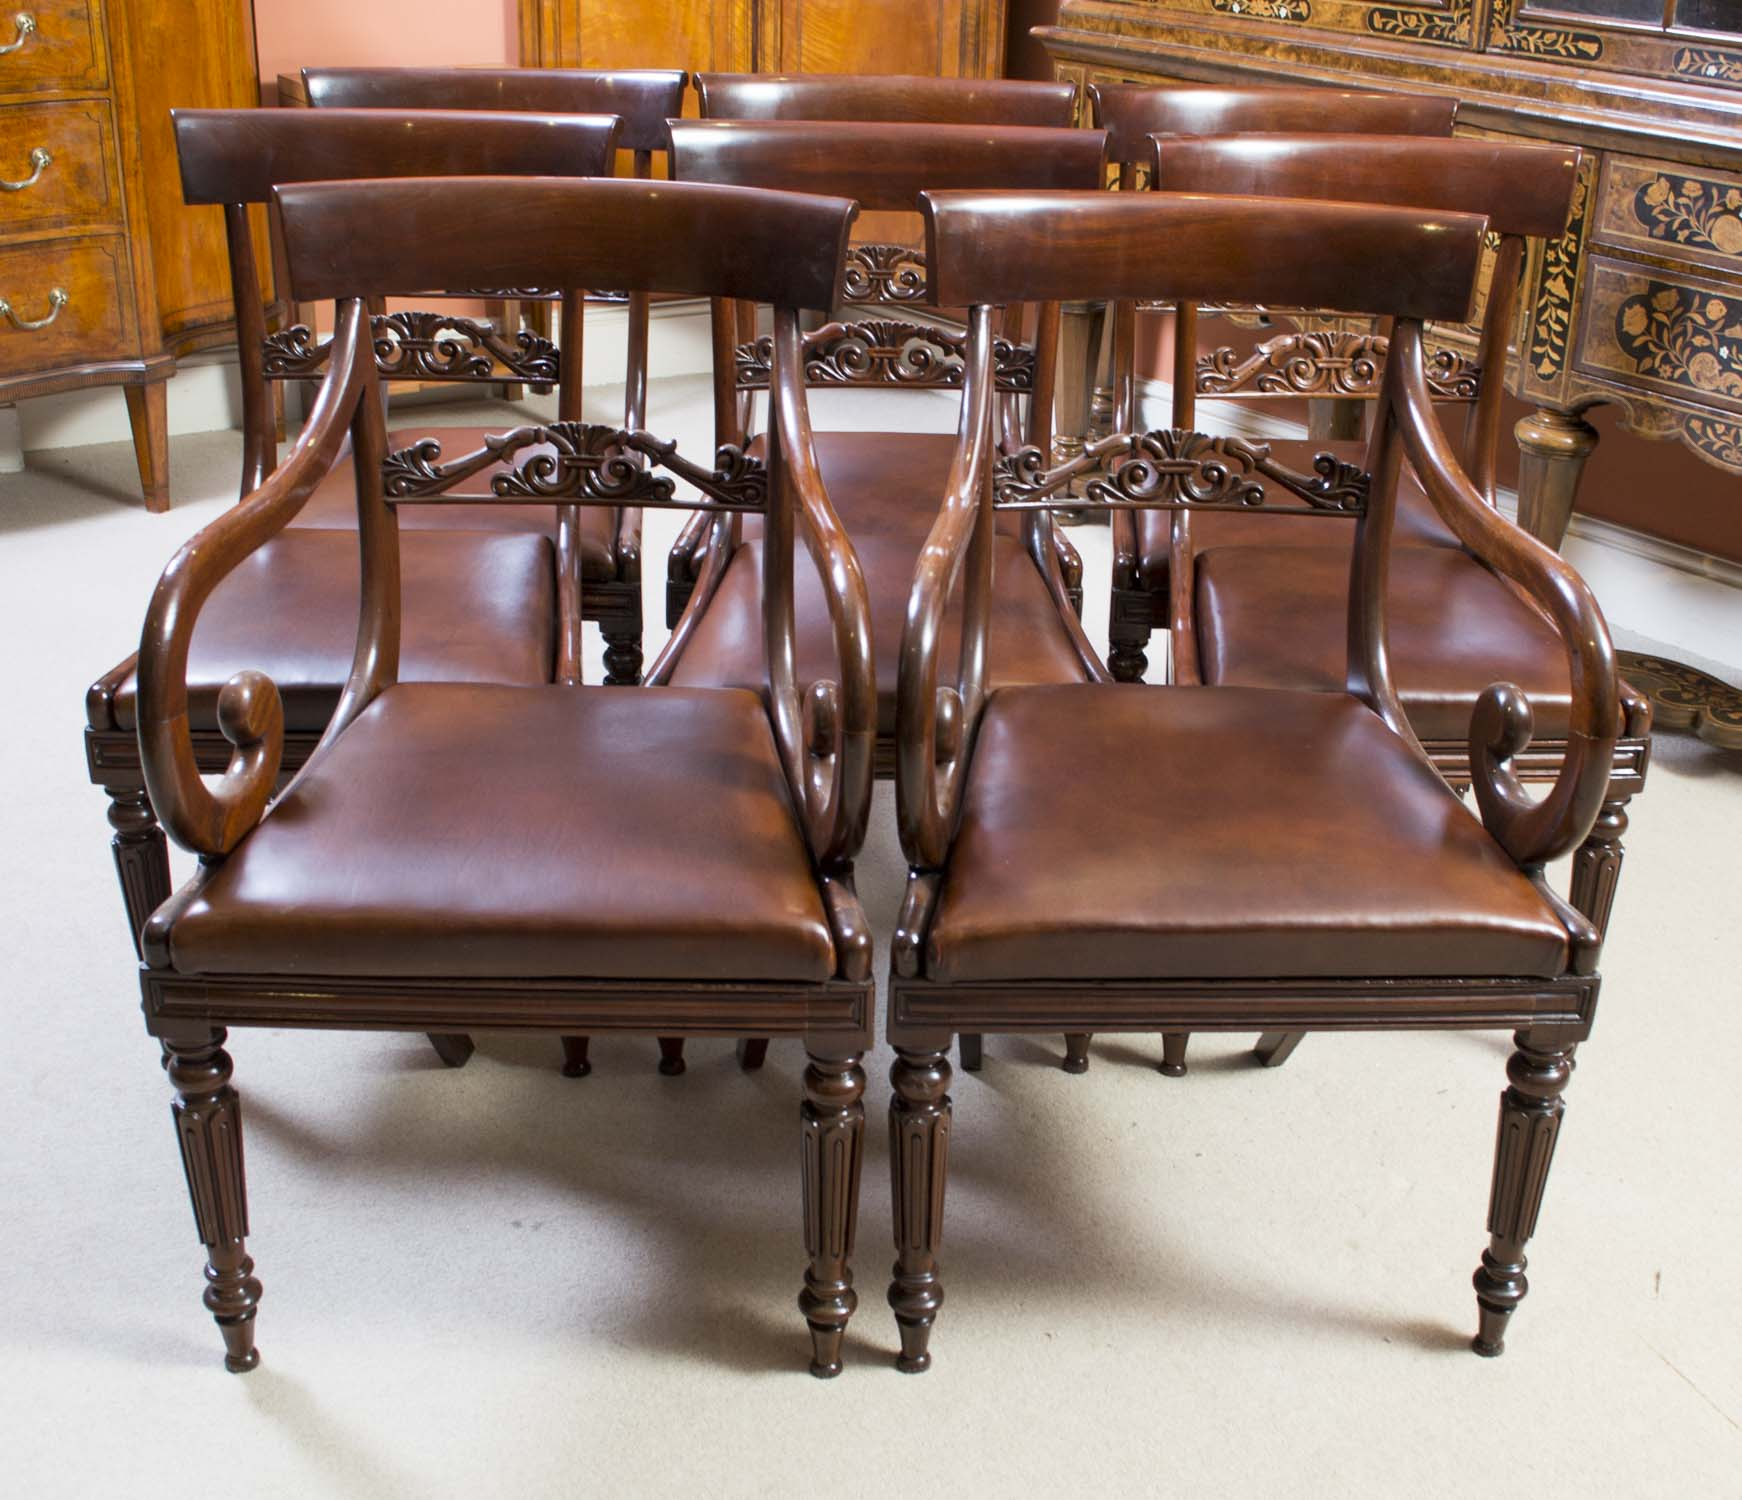 Antique regency dining chairs - Antique Regency Dining Chairs 15